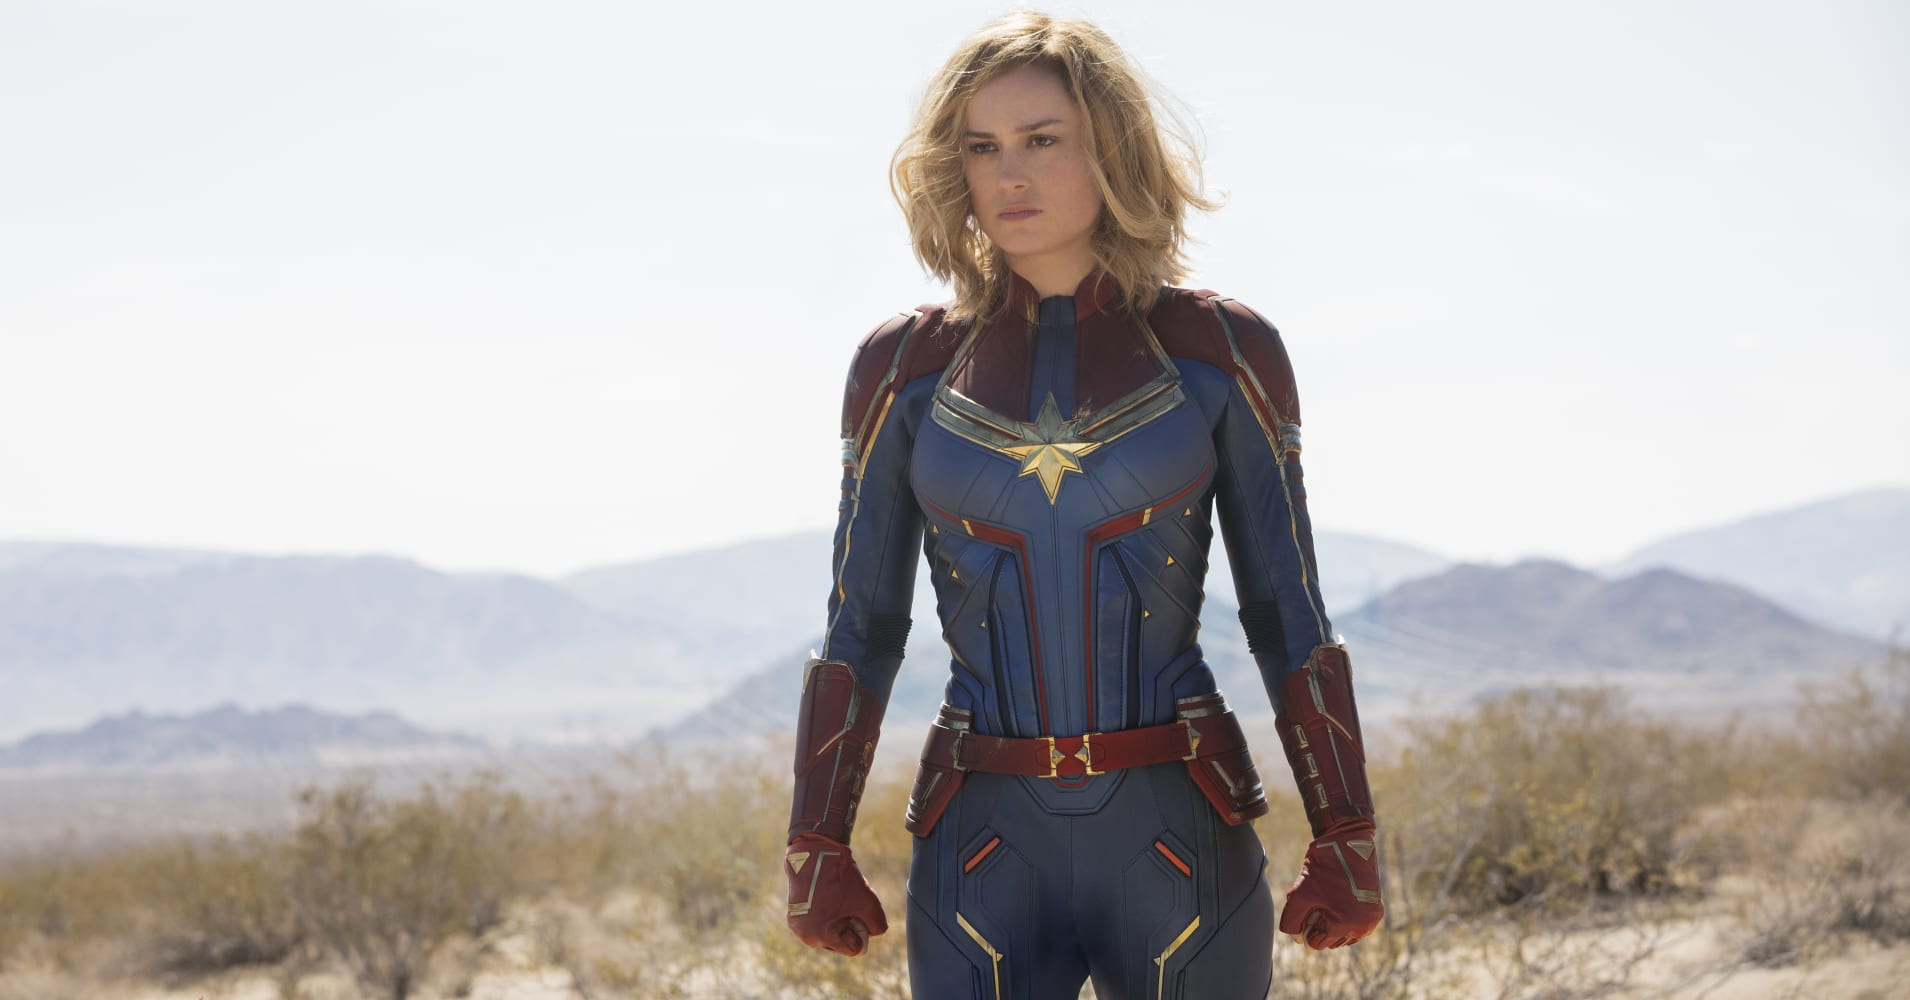 'Captain Marvel' presale tickets have already outpaced those of 'Wonder Woman'